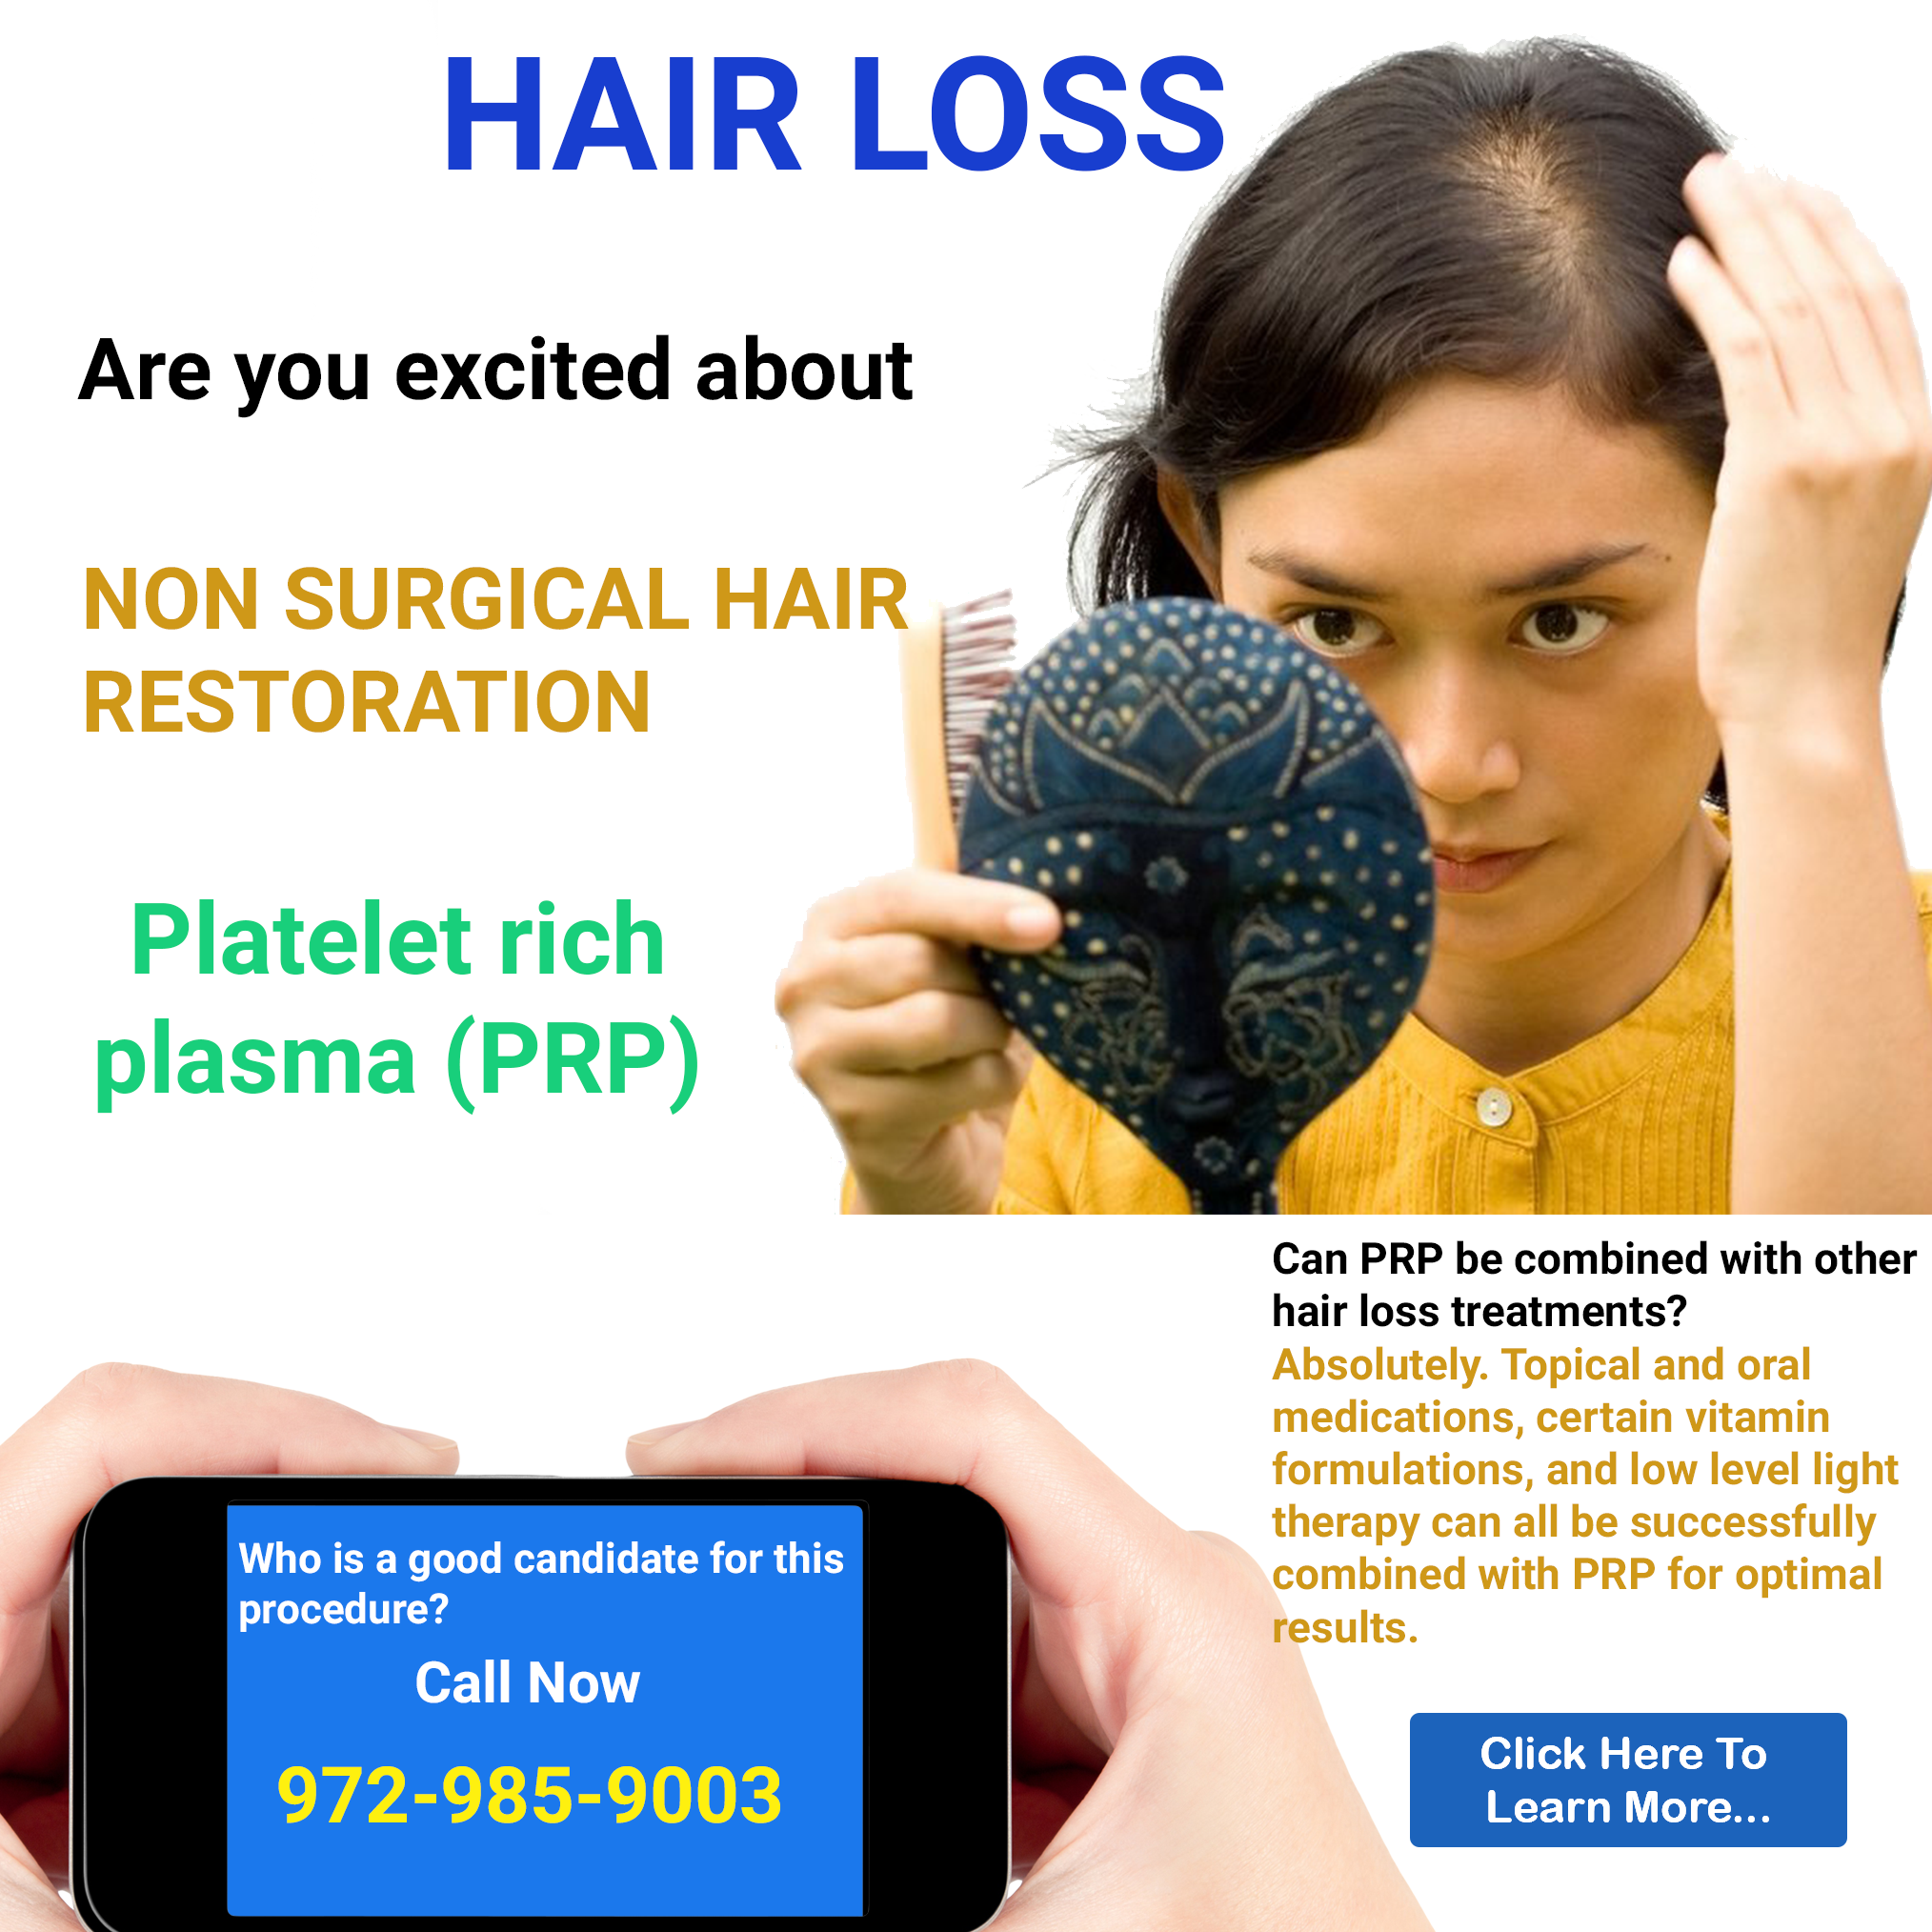 What Your Need to Know About Non-Surgical Hair Restoration ...